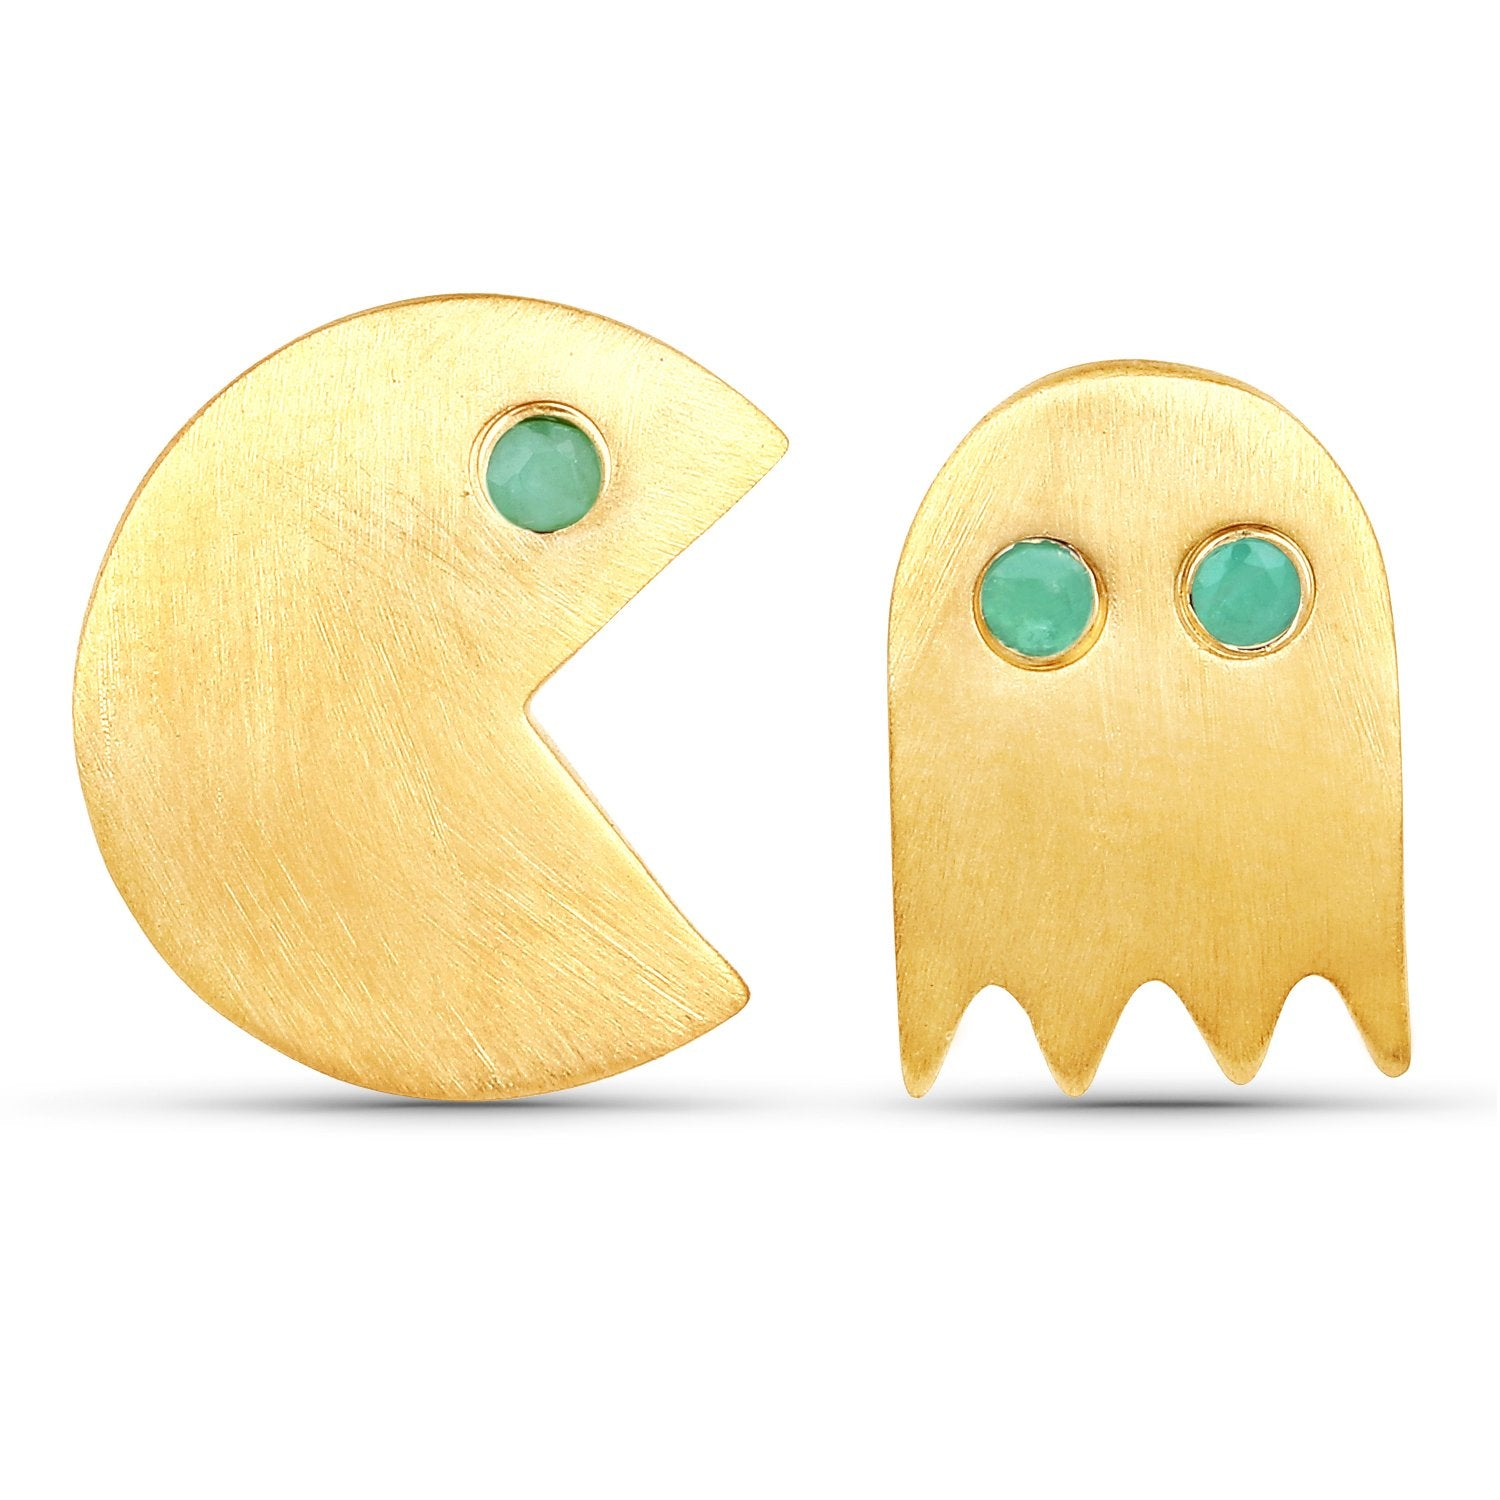 LoveHuang 0.09 Carats Genuine Emerald Pacman Earrings Solid .925 Sterling Silver With 18KT Yellow Gold Plating, Matte Finish